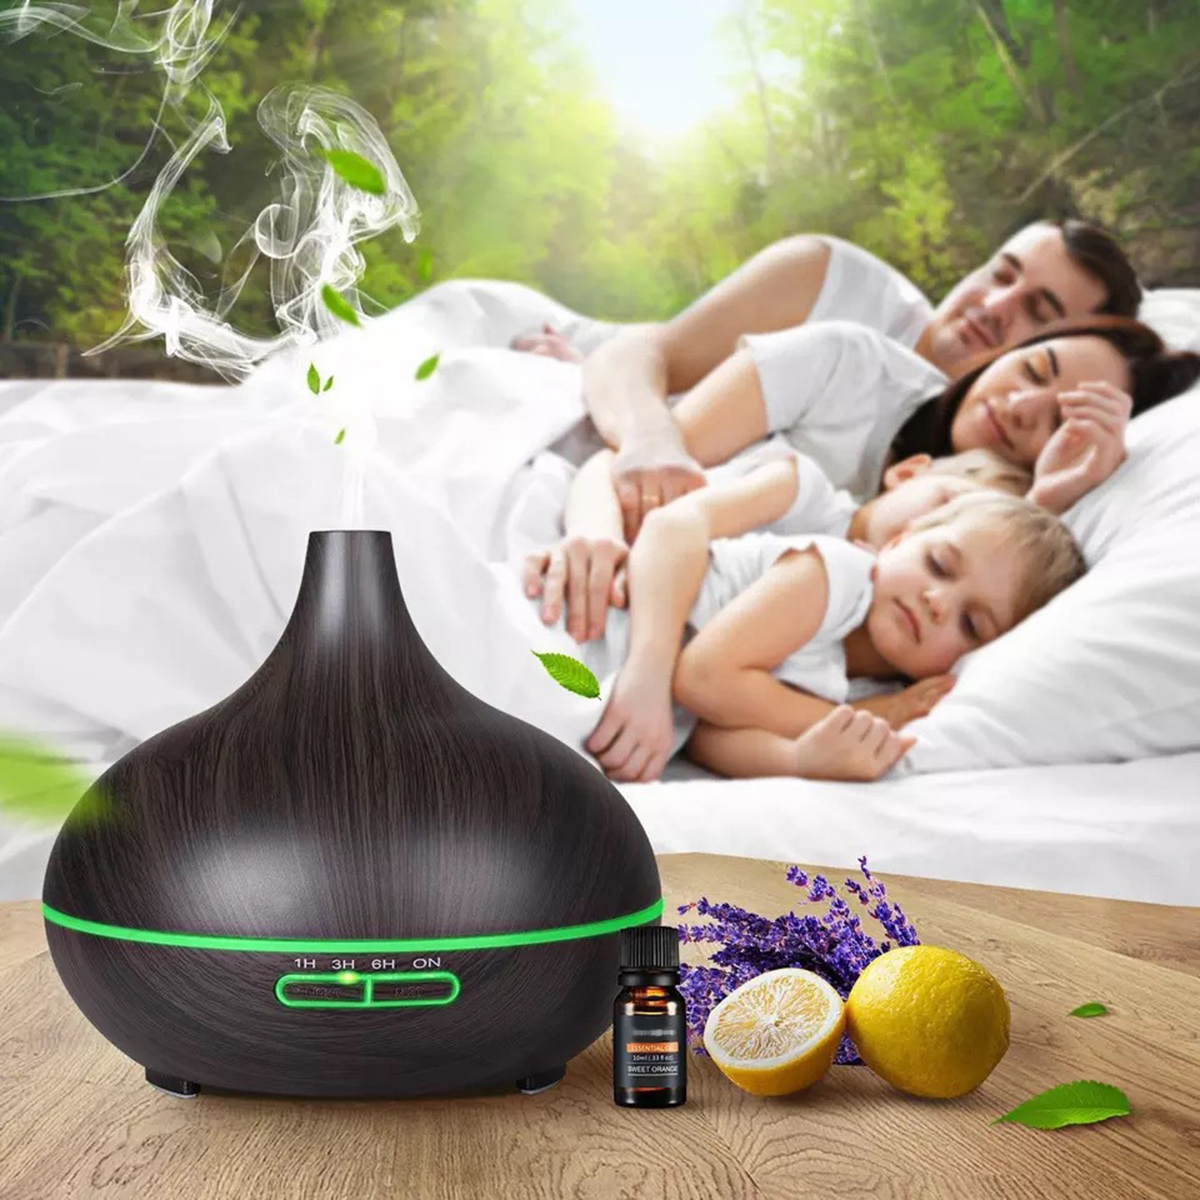 Details about  /400ml Aroma Essential Oil Diffuser Ultrasonic Air Humidifier With Wood Grain